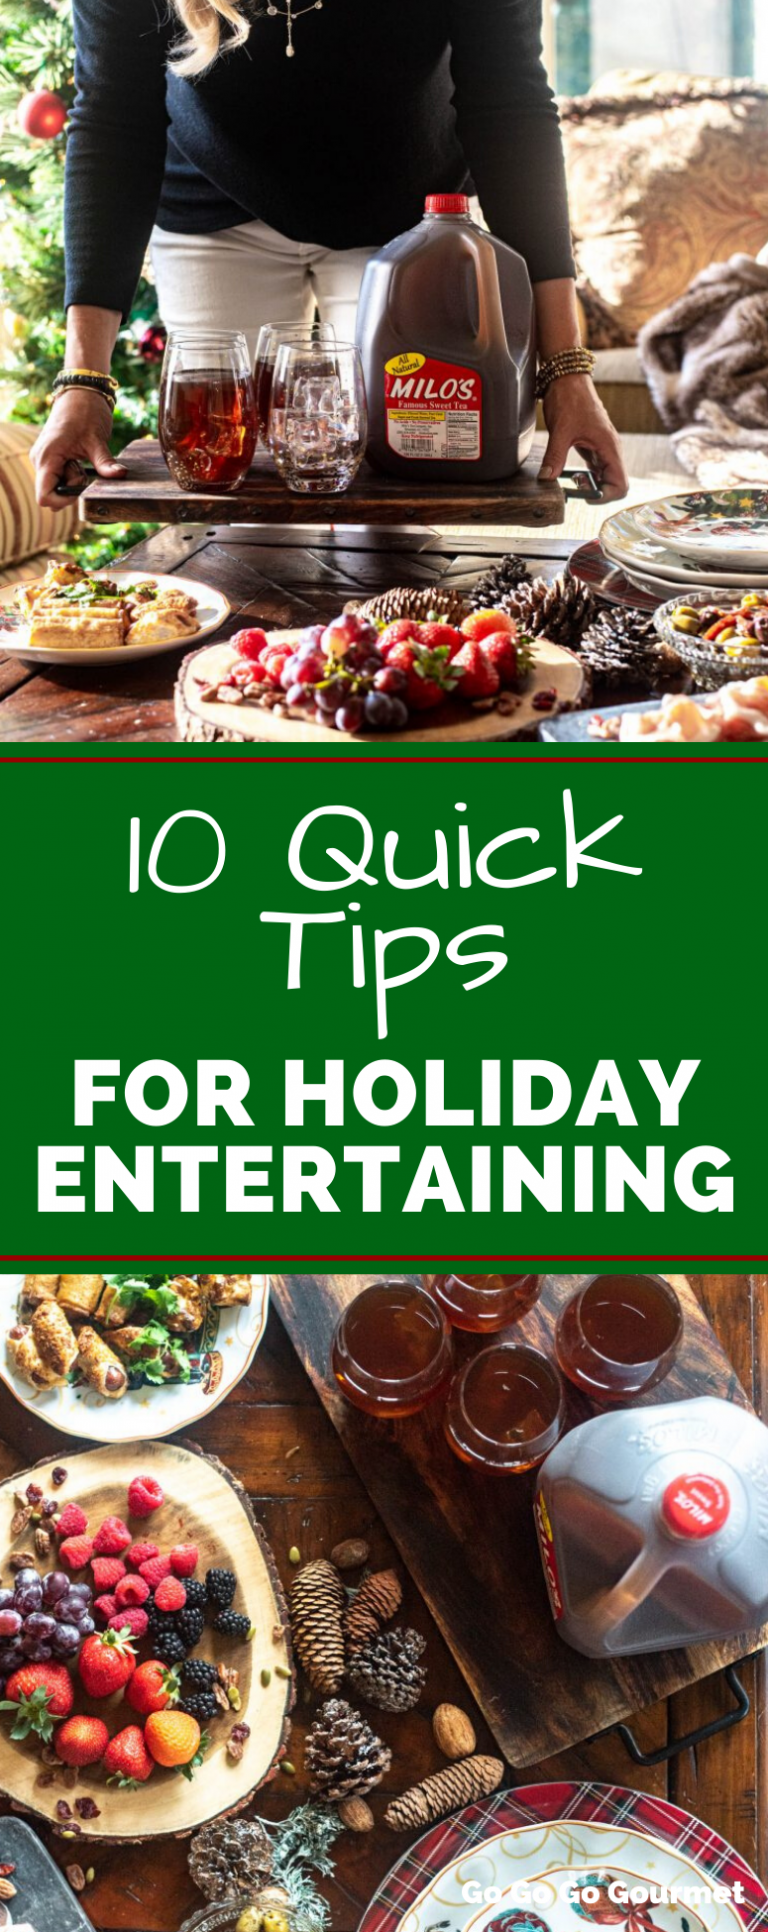 It's time to get rid of stress when planning holiday parties! Check out all my tips for planning an easy Christmas party without a ton of work. Disposable plates, easy appetizers and a jug of Milo's Famous Tea are just a few ways I plan a great party with less stress! #ad #milosmoments #gogogogourmet #holidayentertaining #christmasparty #partyguide via @gogogogourmet